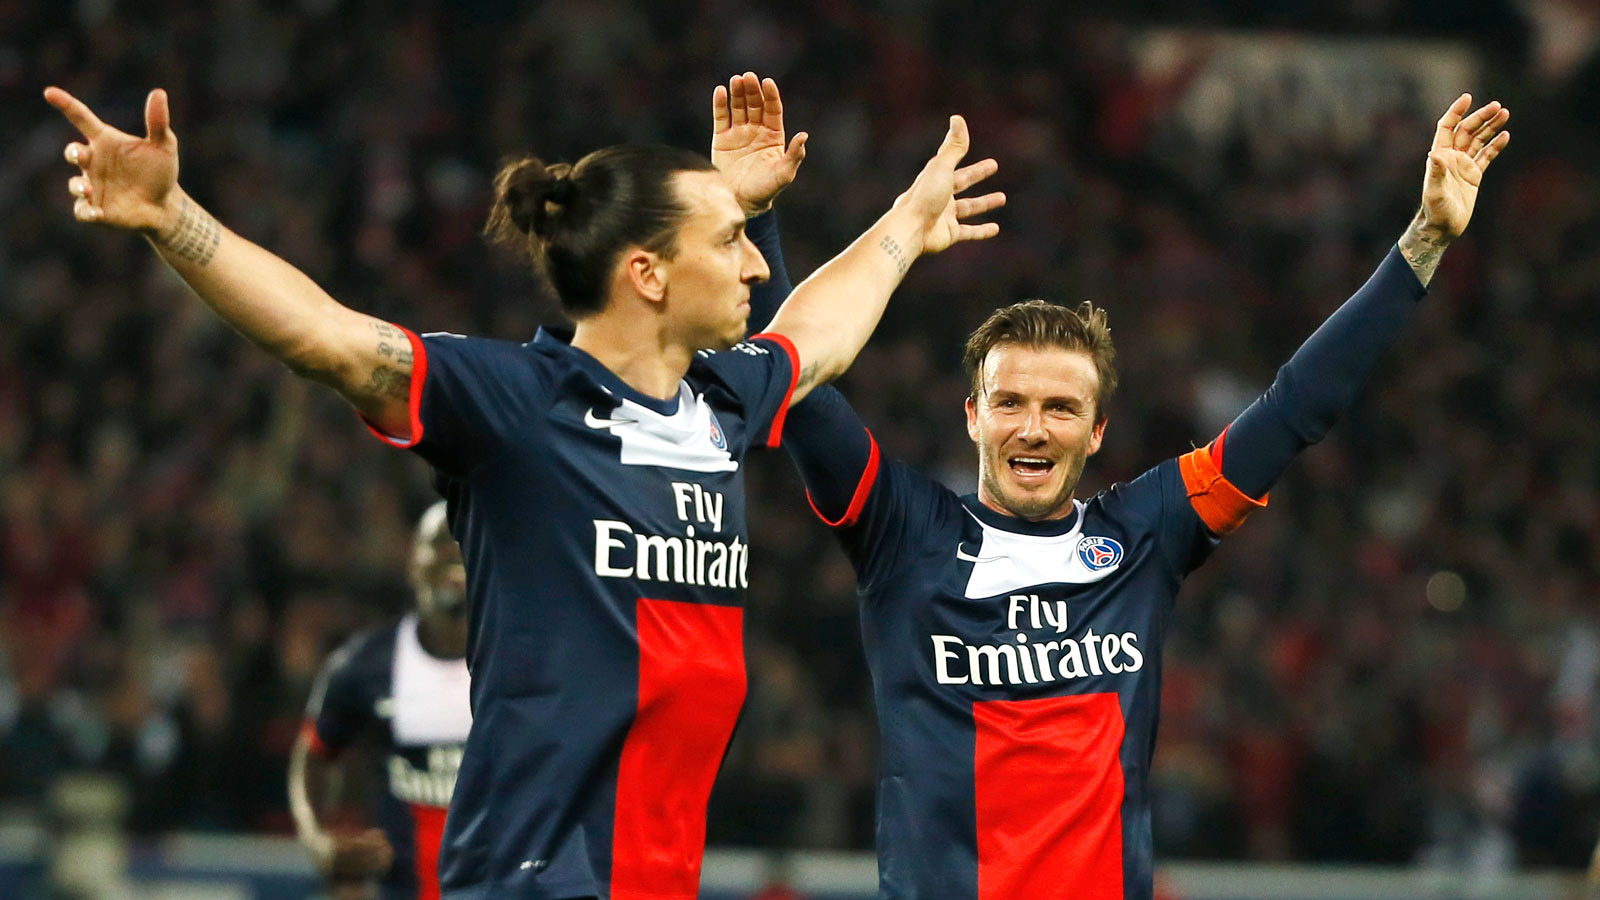 Ibrahimovic could join Beckham's new Miami-based franchise